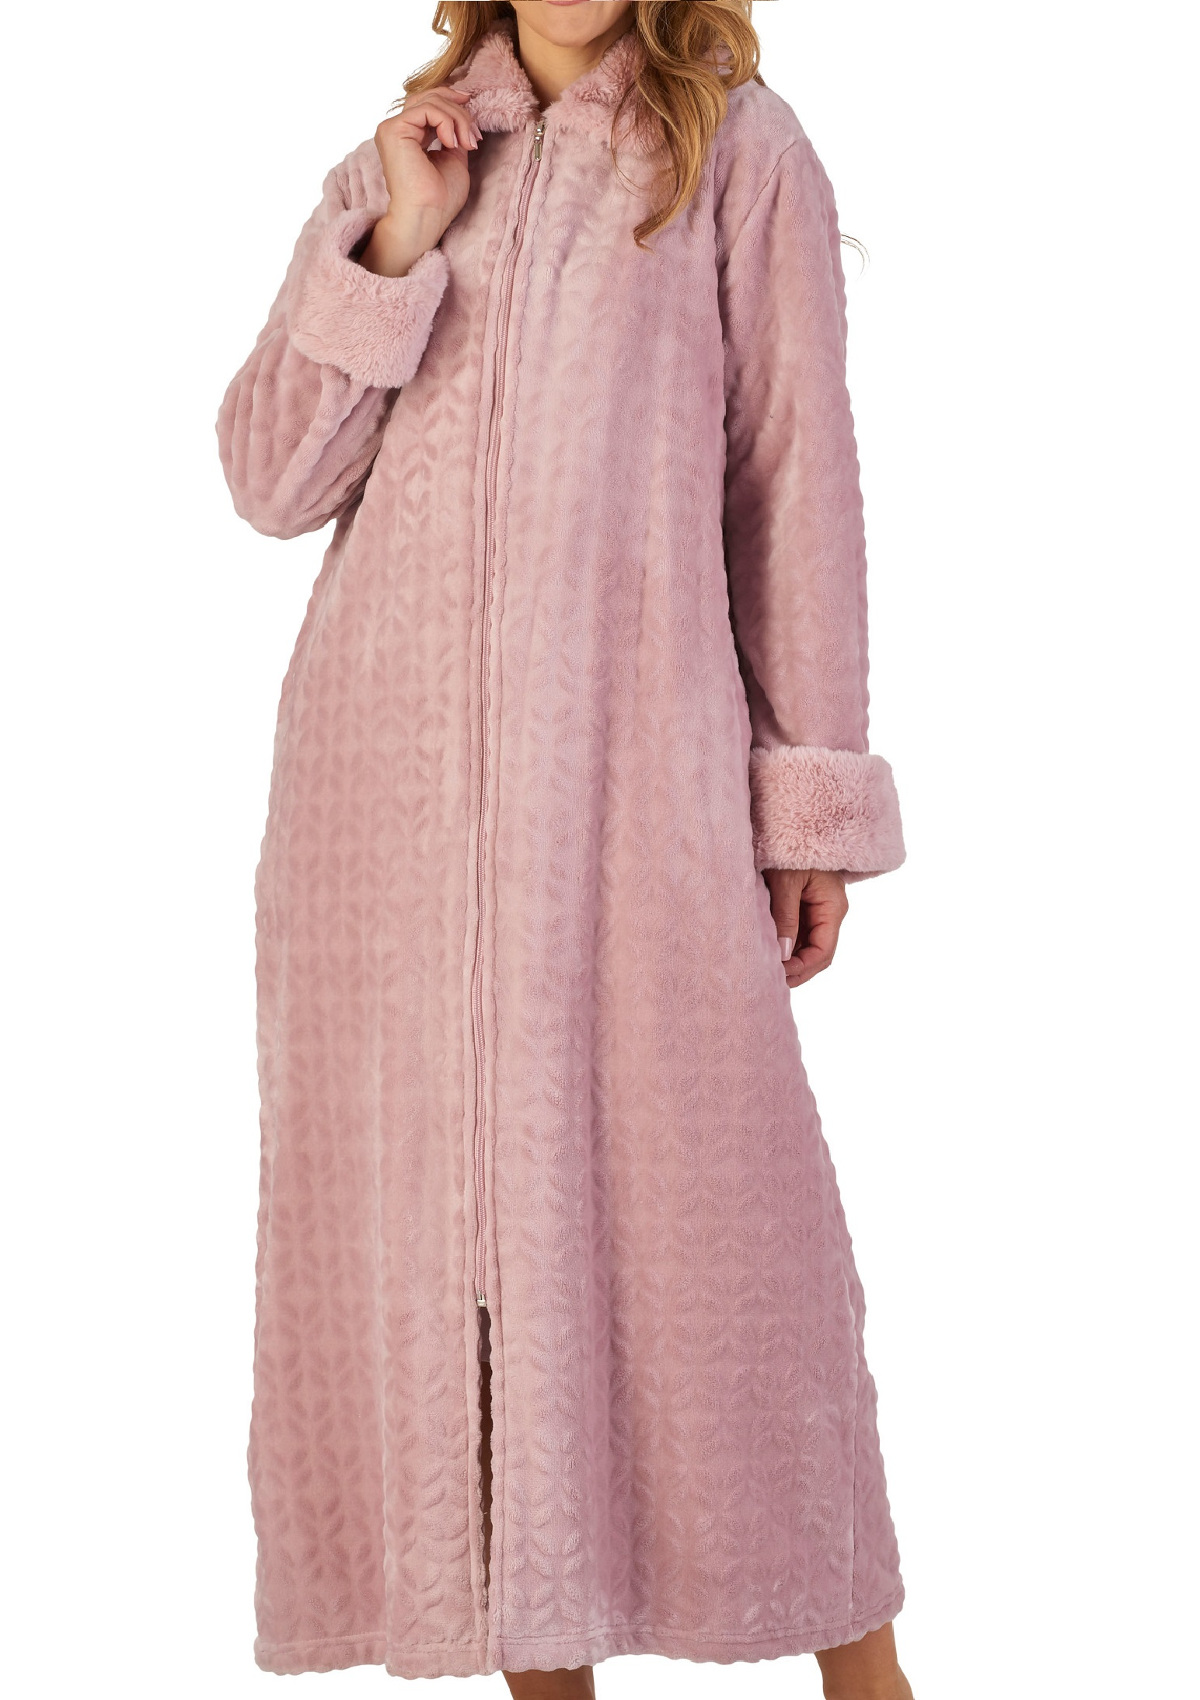 Robe De Chambre Polaire Fermeture Eclair Dressing Gown Ladies Faux Fur Trim Zip Up Fleecy Bathrobe